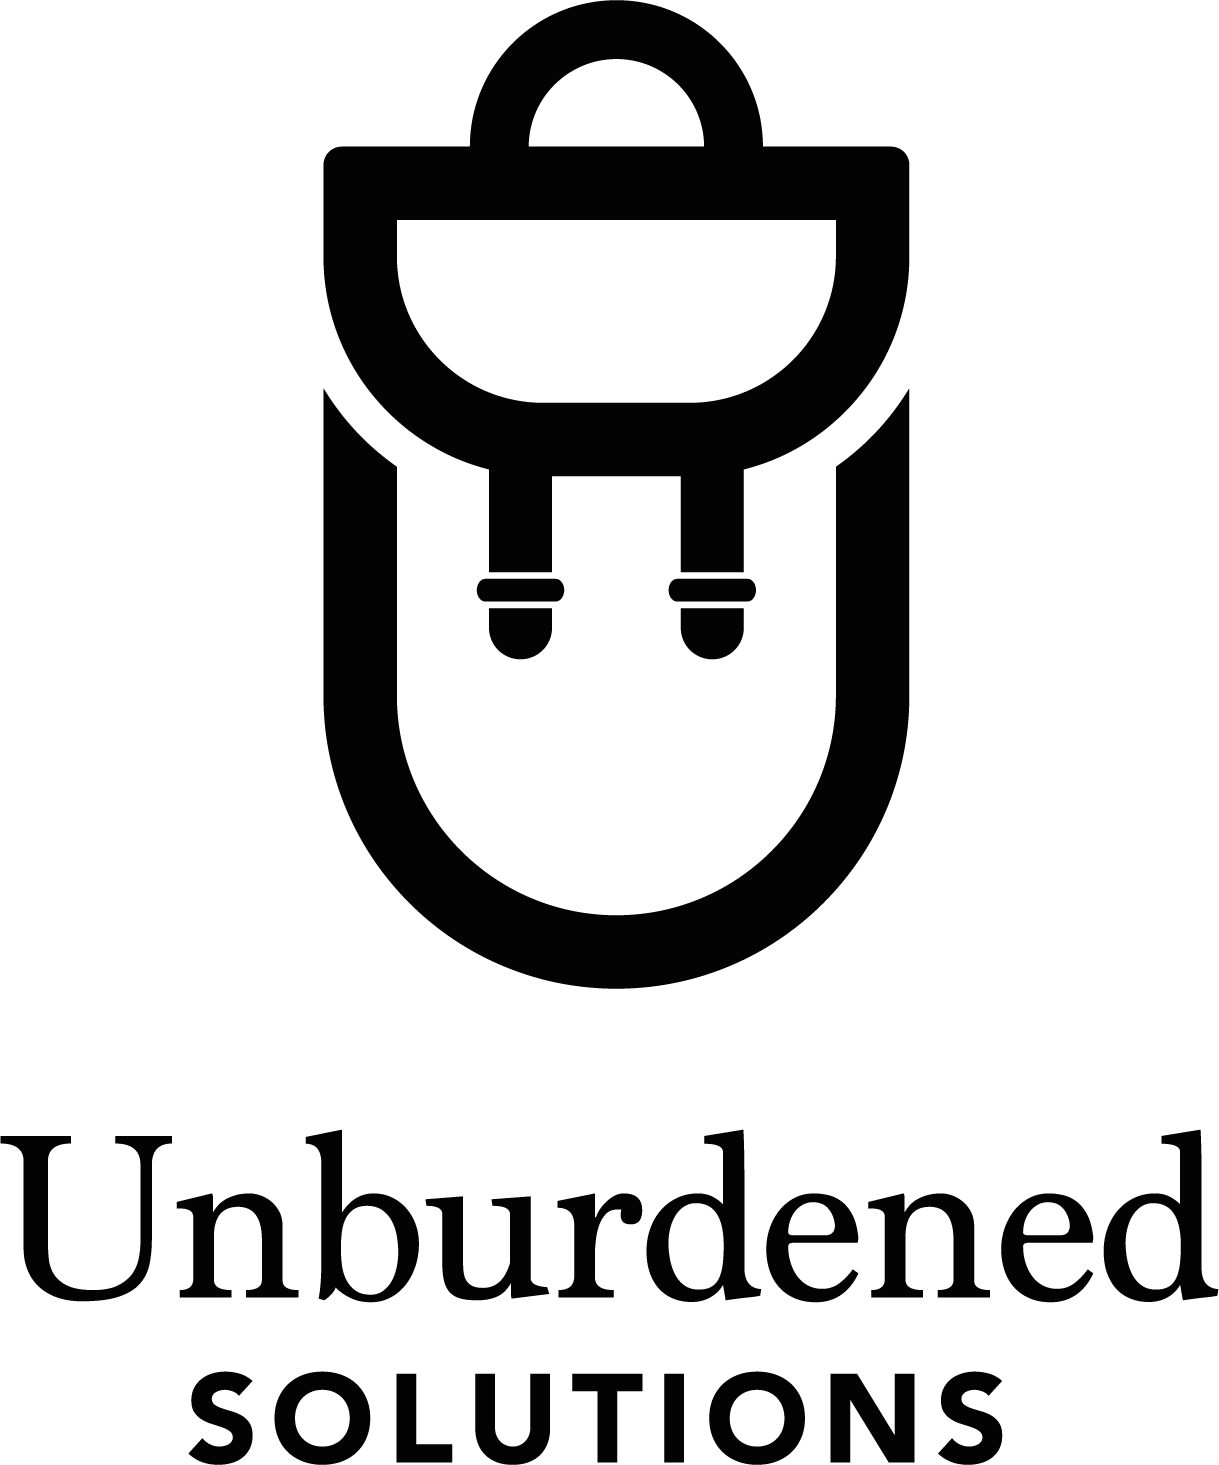 Unburdened Limited - company logo